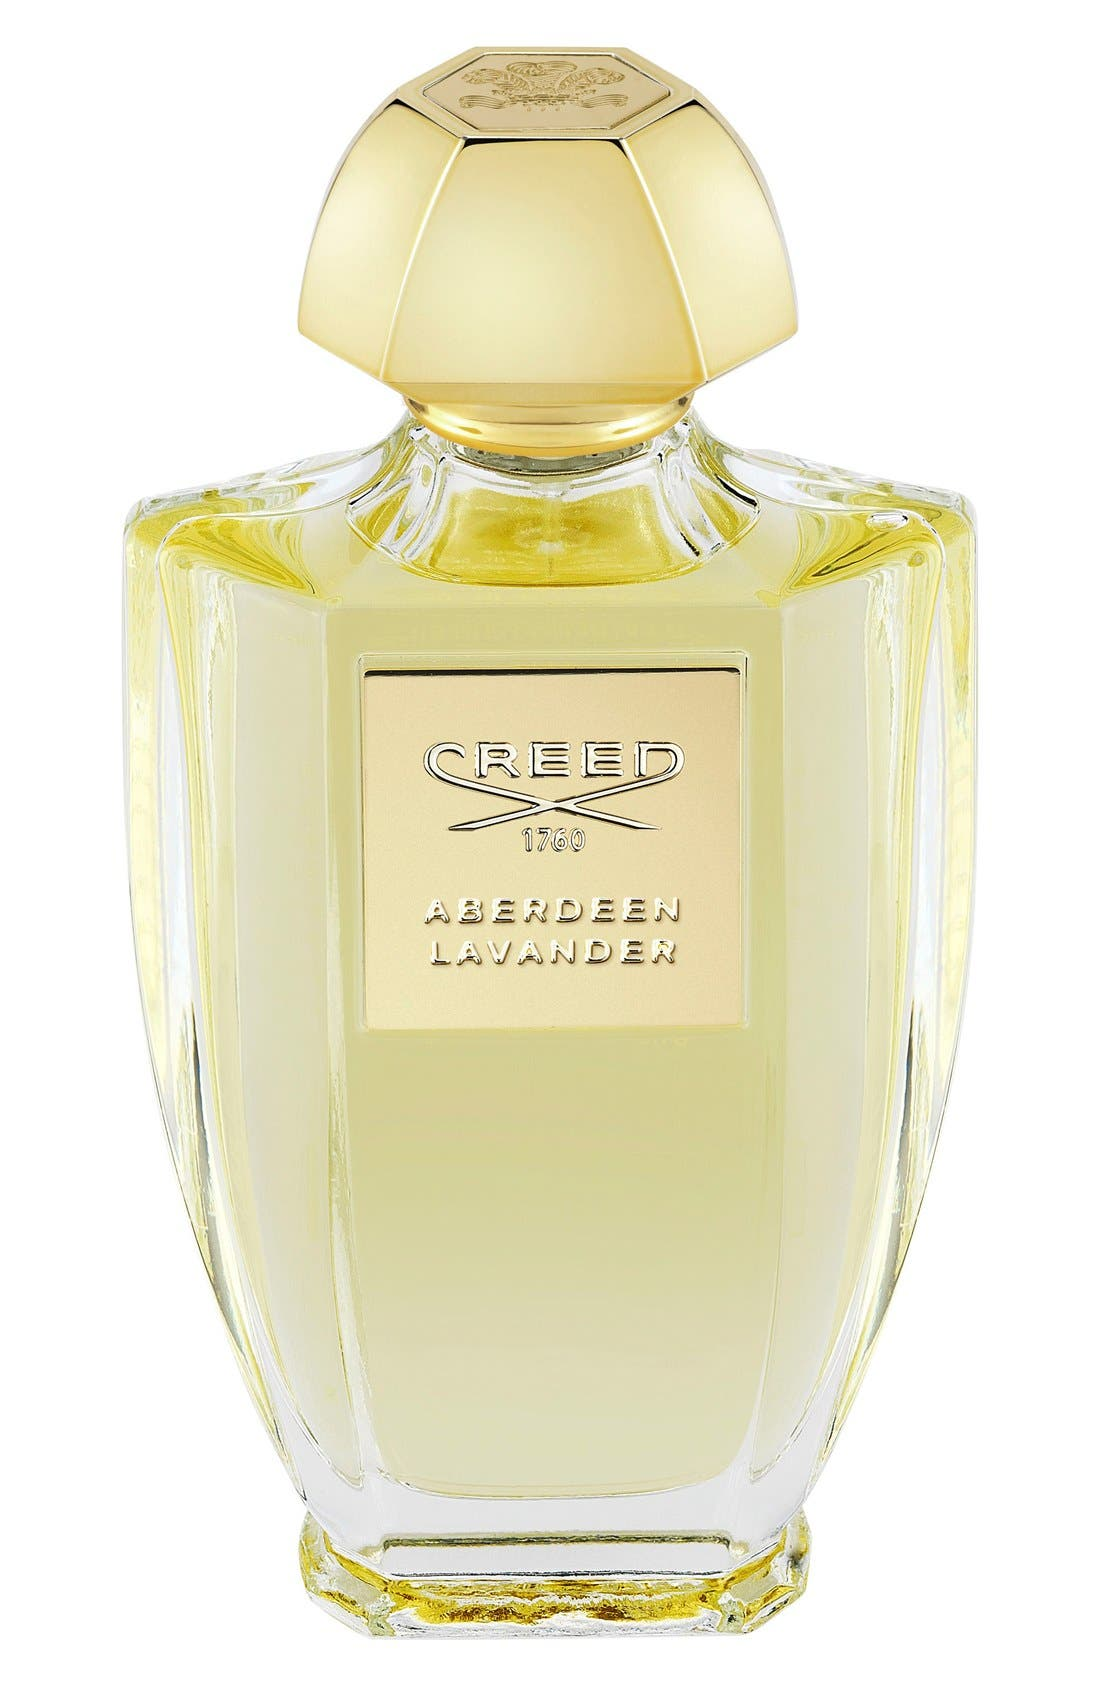 Creed Aberdeen Lavender Fragrance